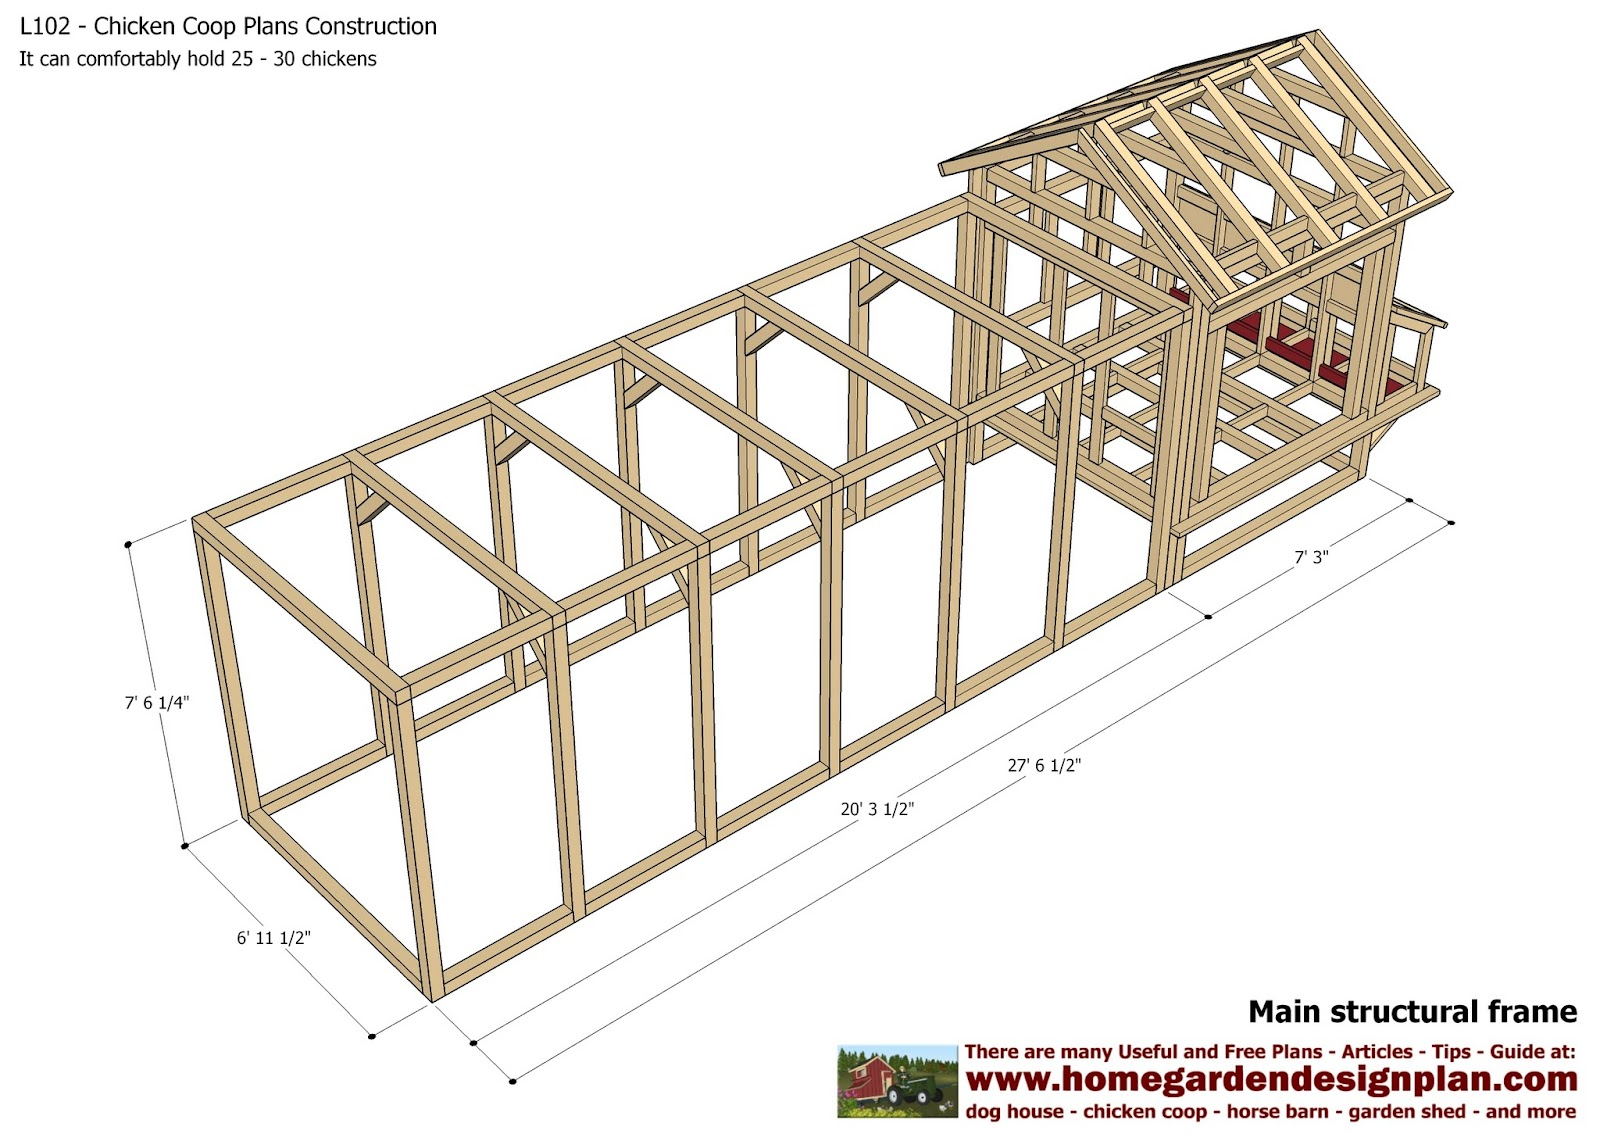 Home garden plans l102 chicken coop plans construction for A frame chicken